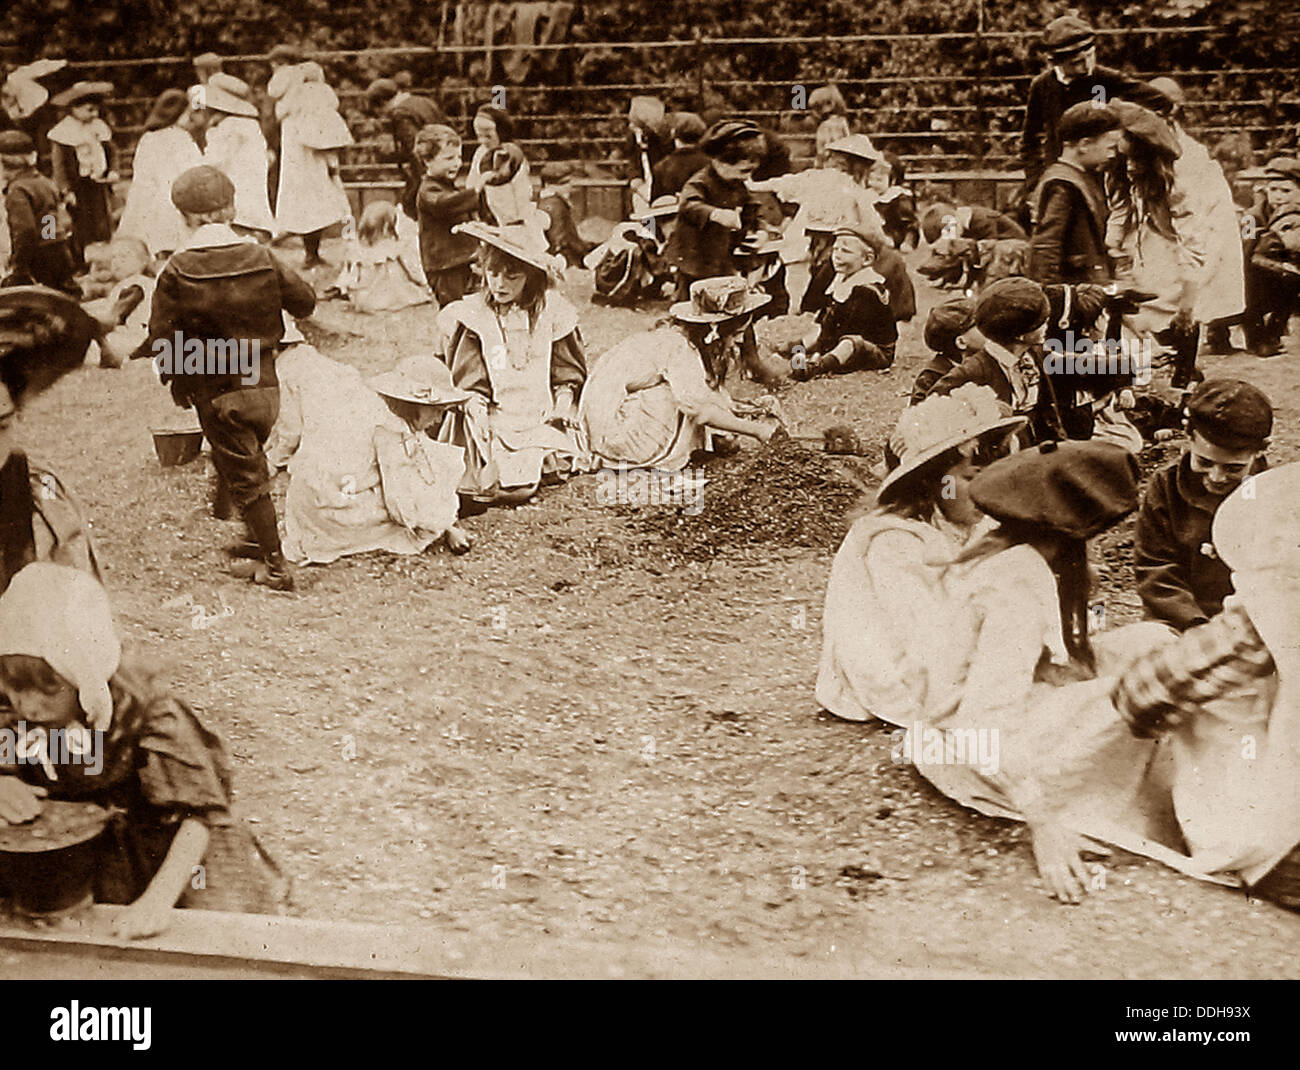 London Regent's Park - The Poor Children's Sandpit in 1908 Stock Photo